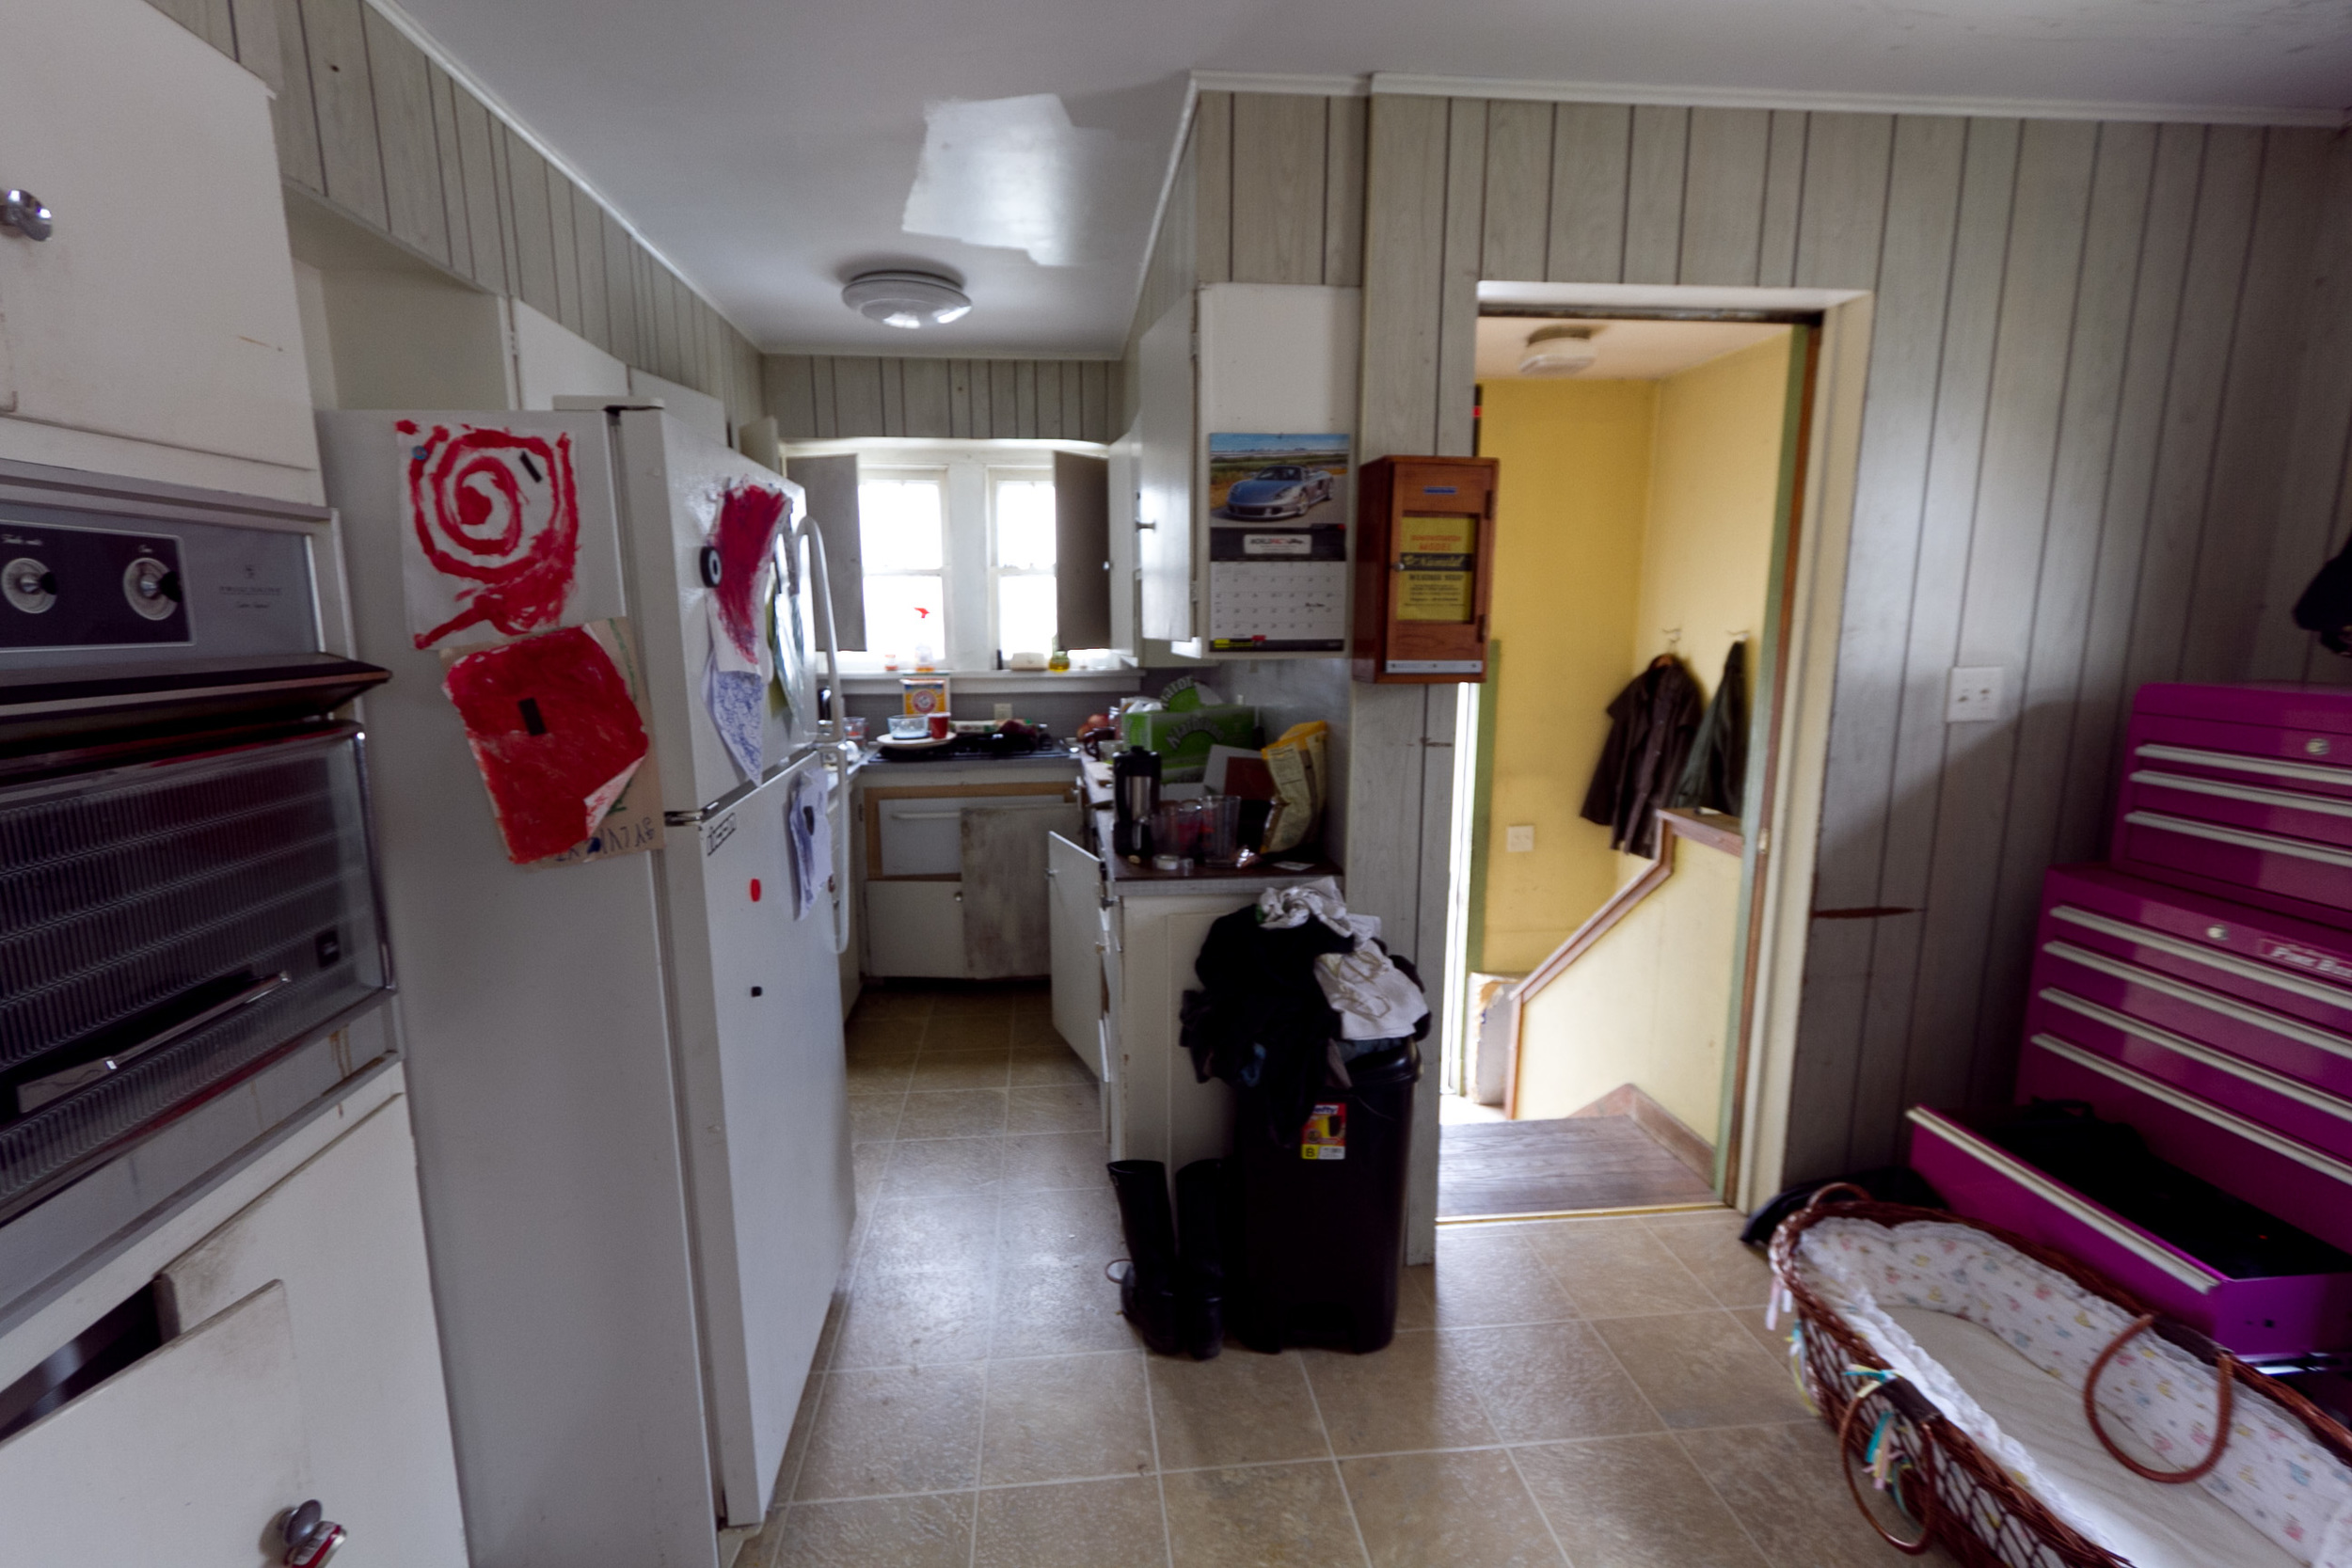 Kitchen, before being staged for sale